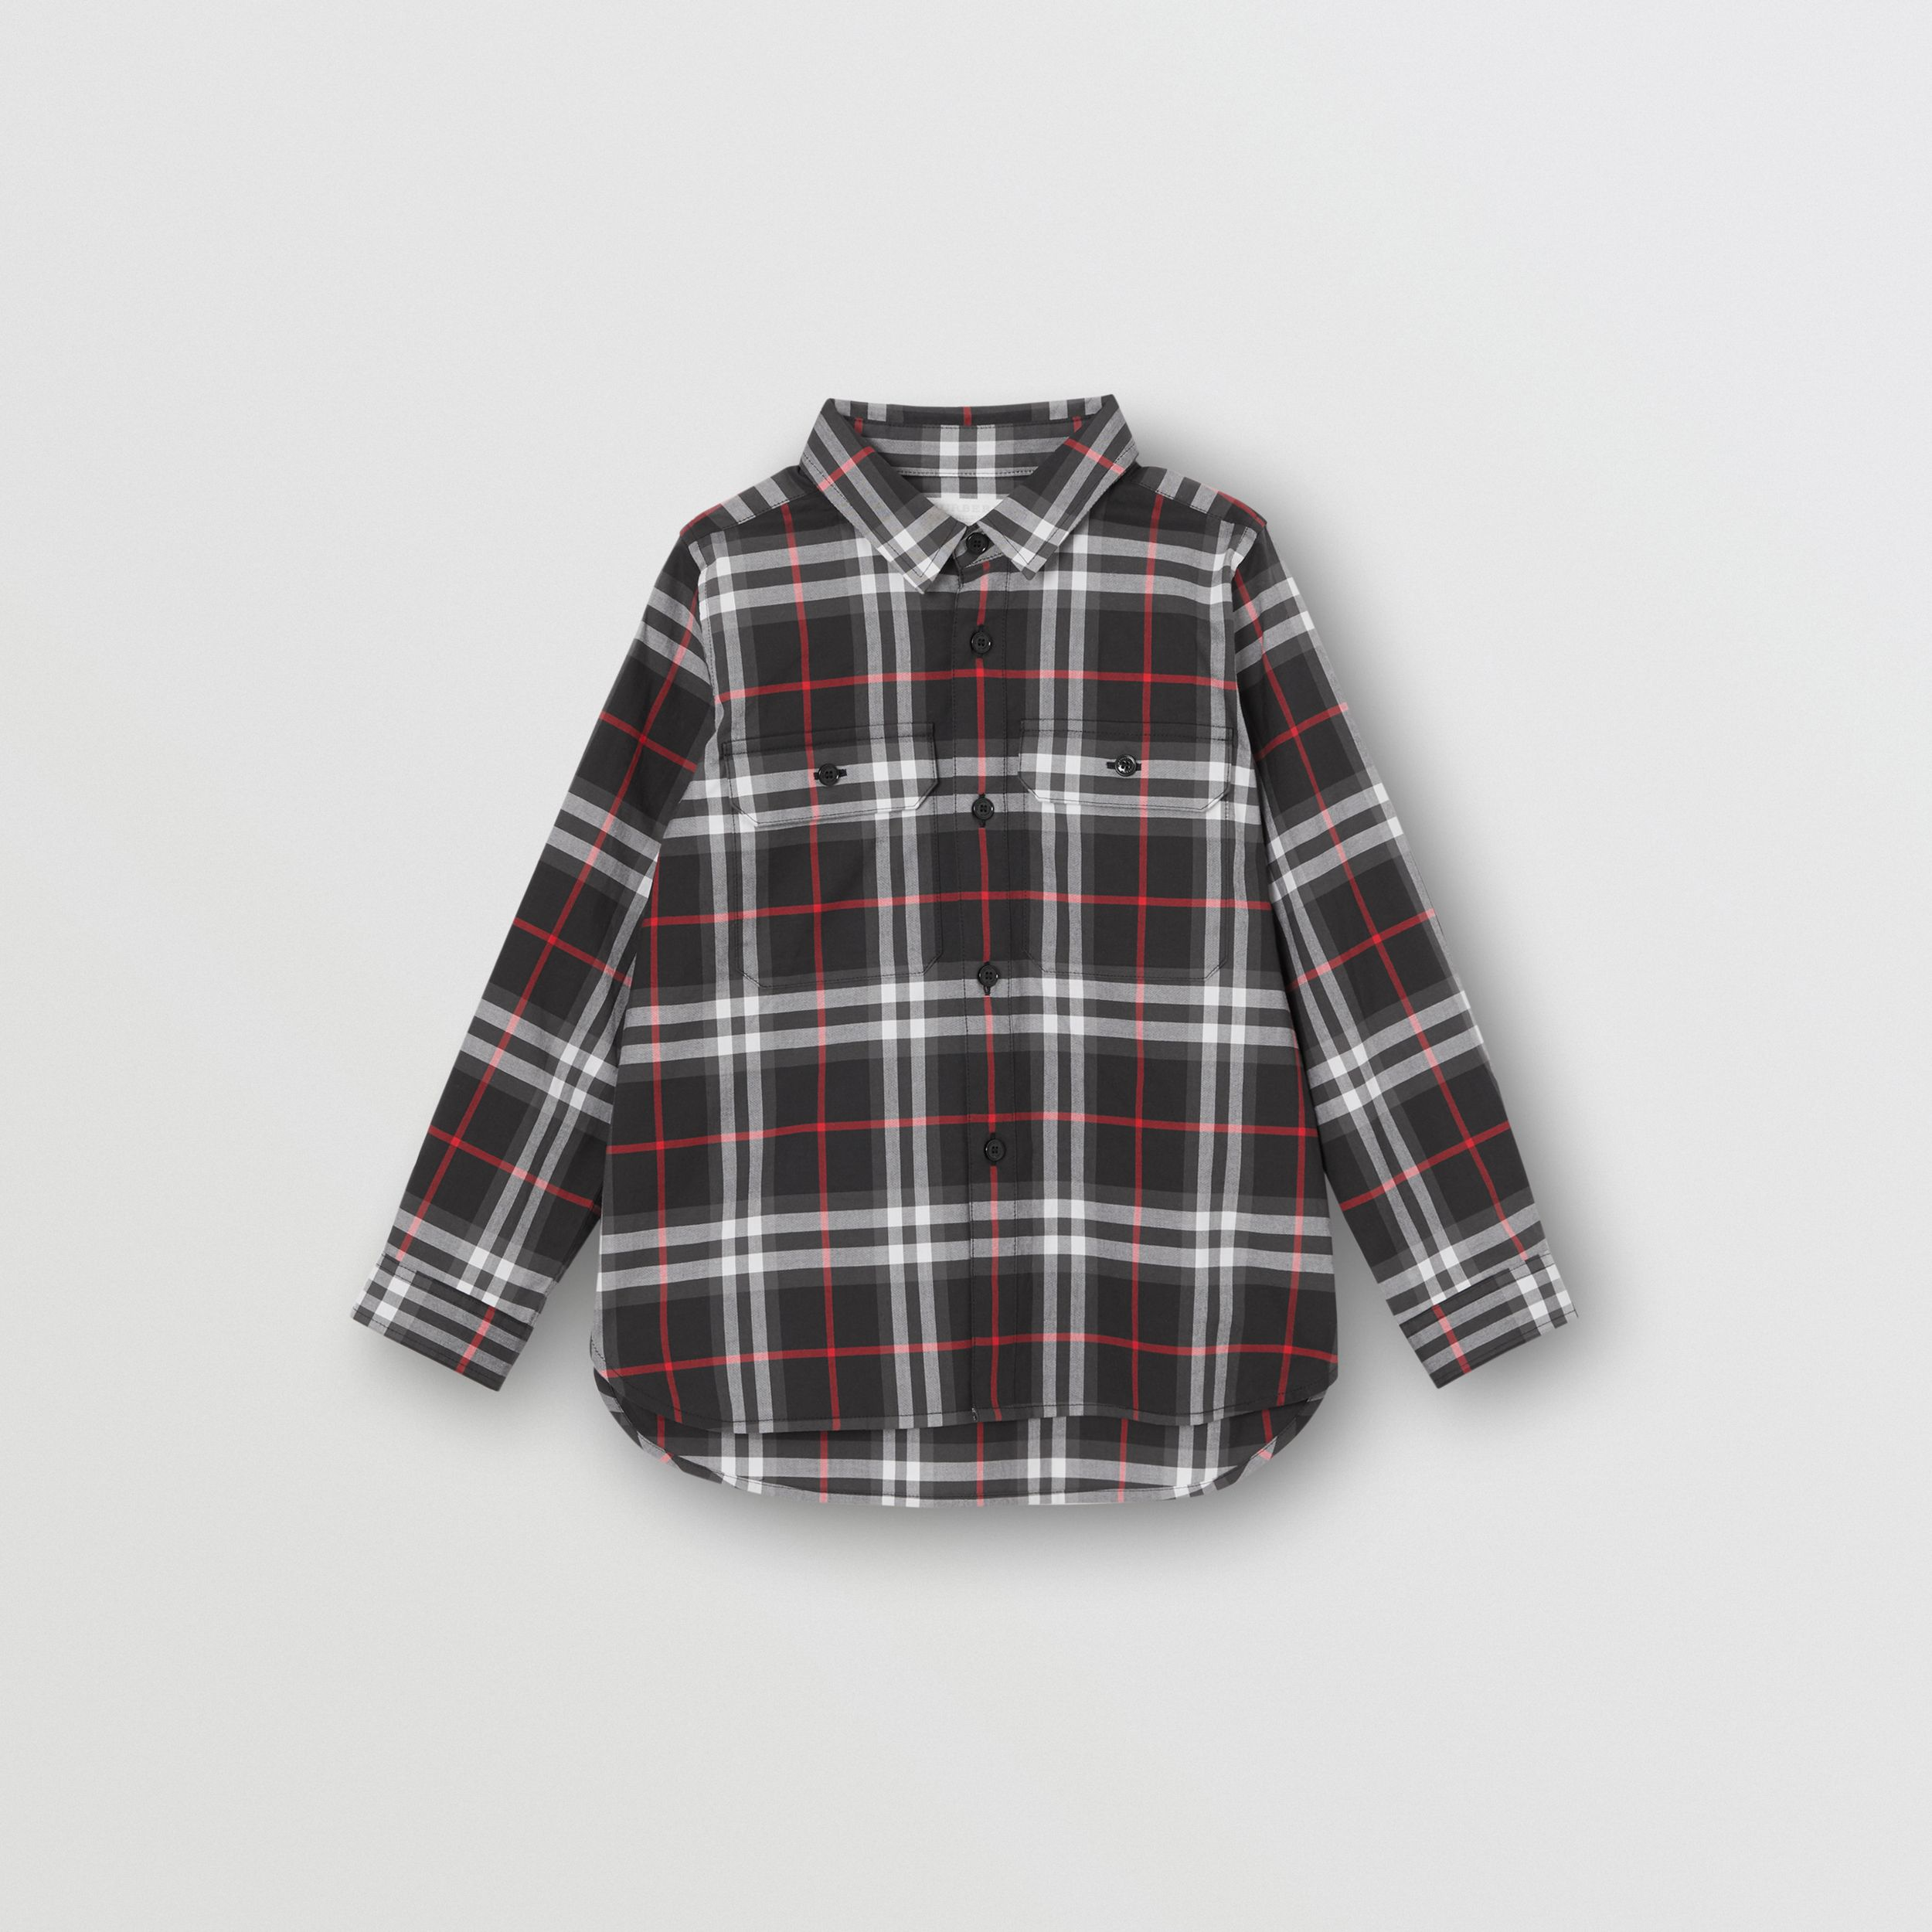 Vintage Check Cotton Shirt in Black | Burberry - 1